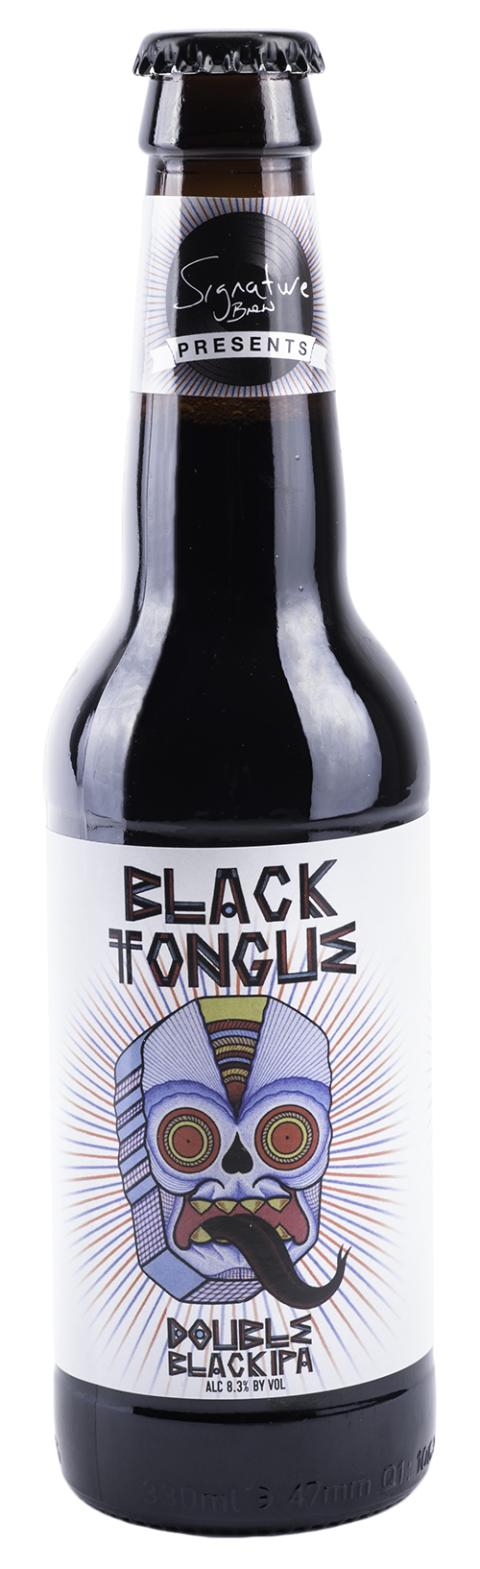 Mastodon Black Tongue Black IPA